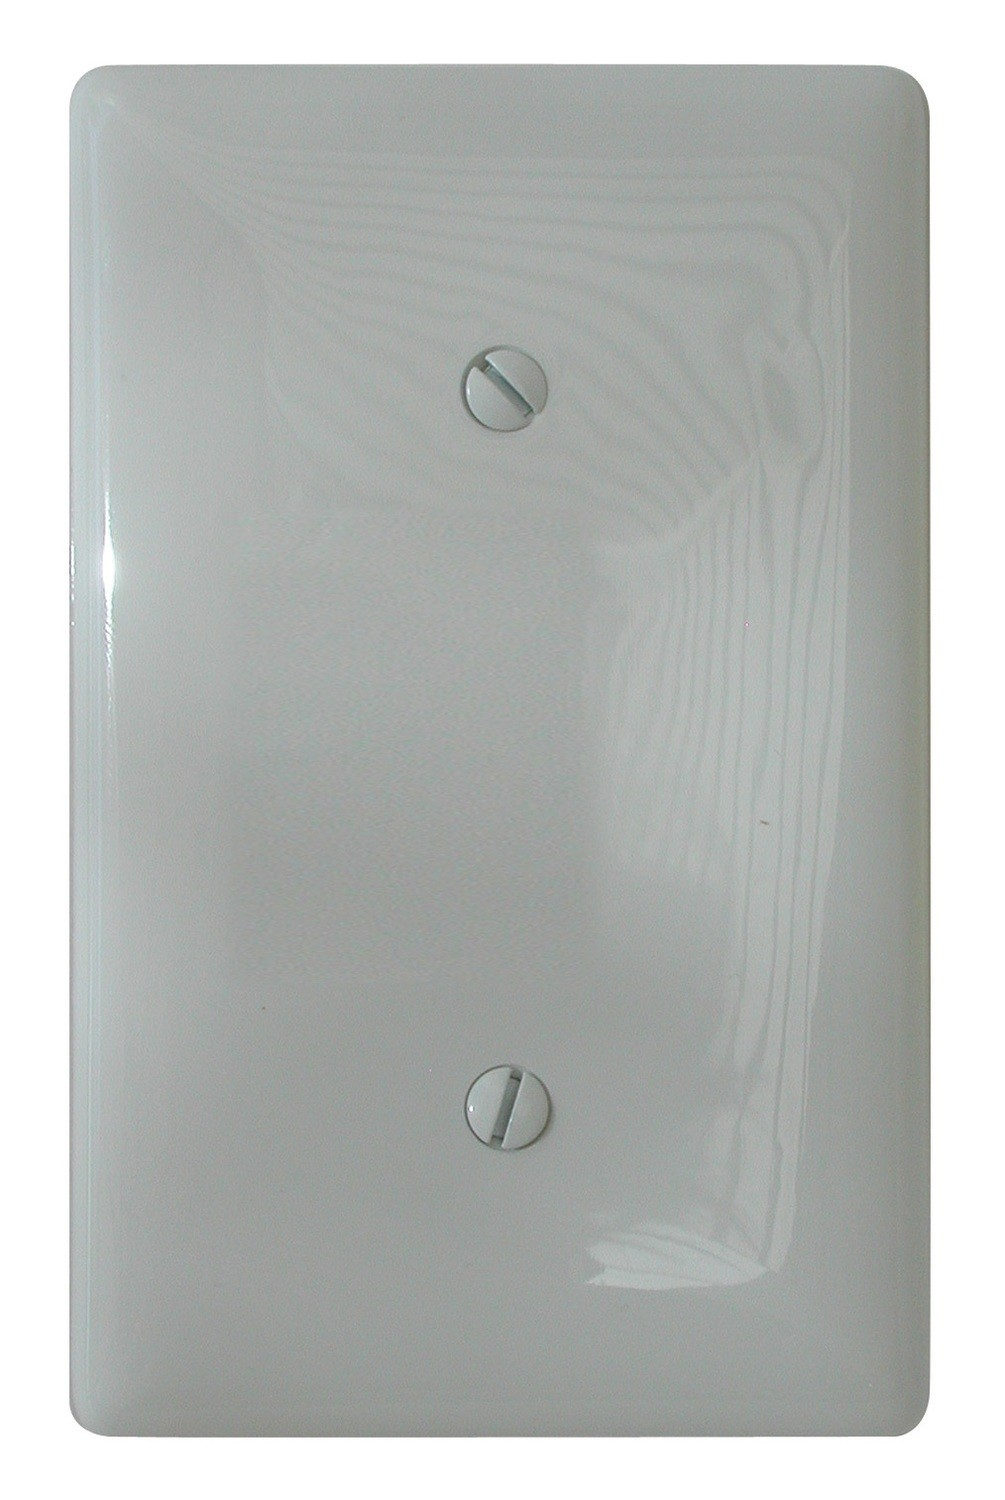 Blank Wall Plate - White